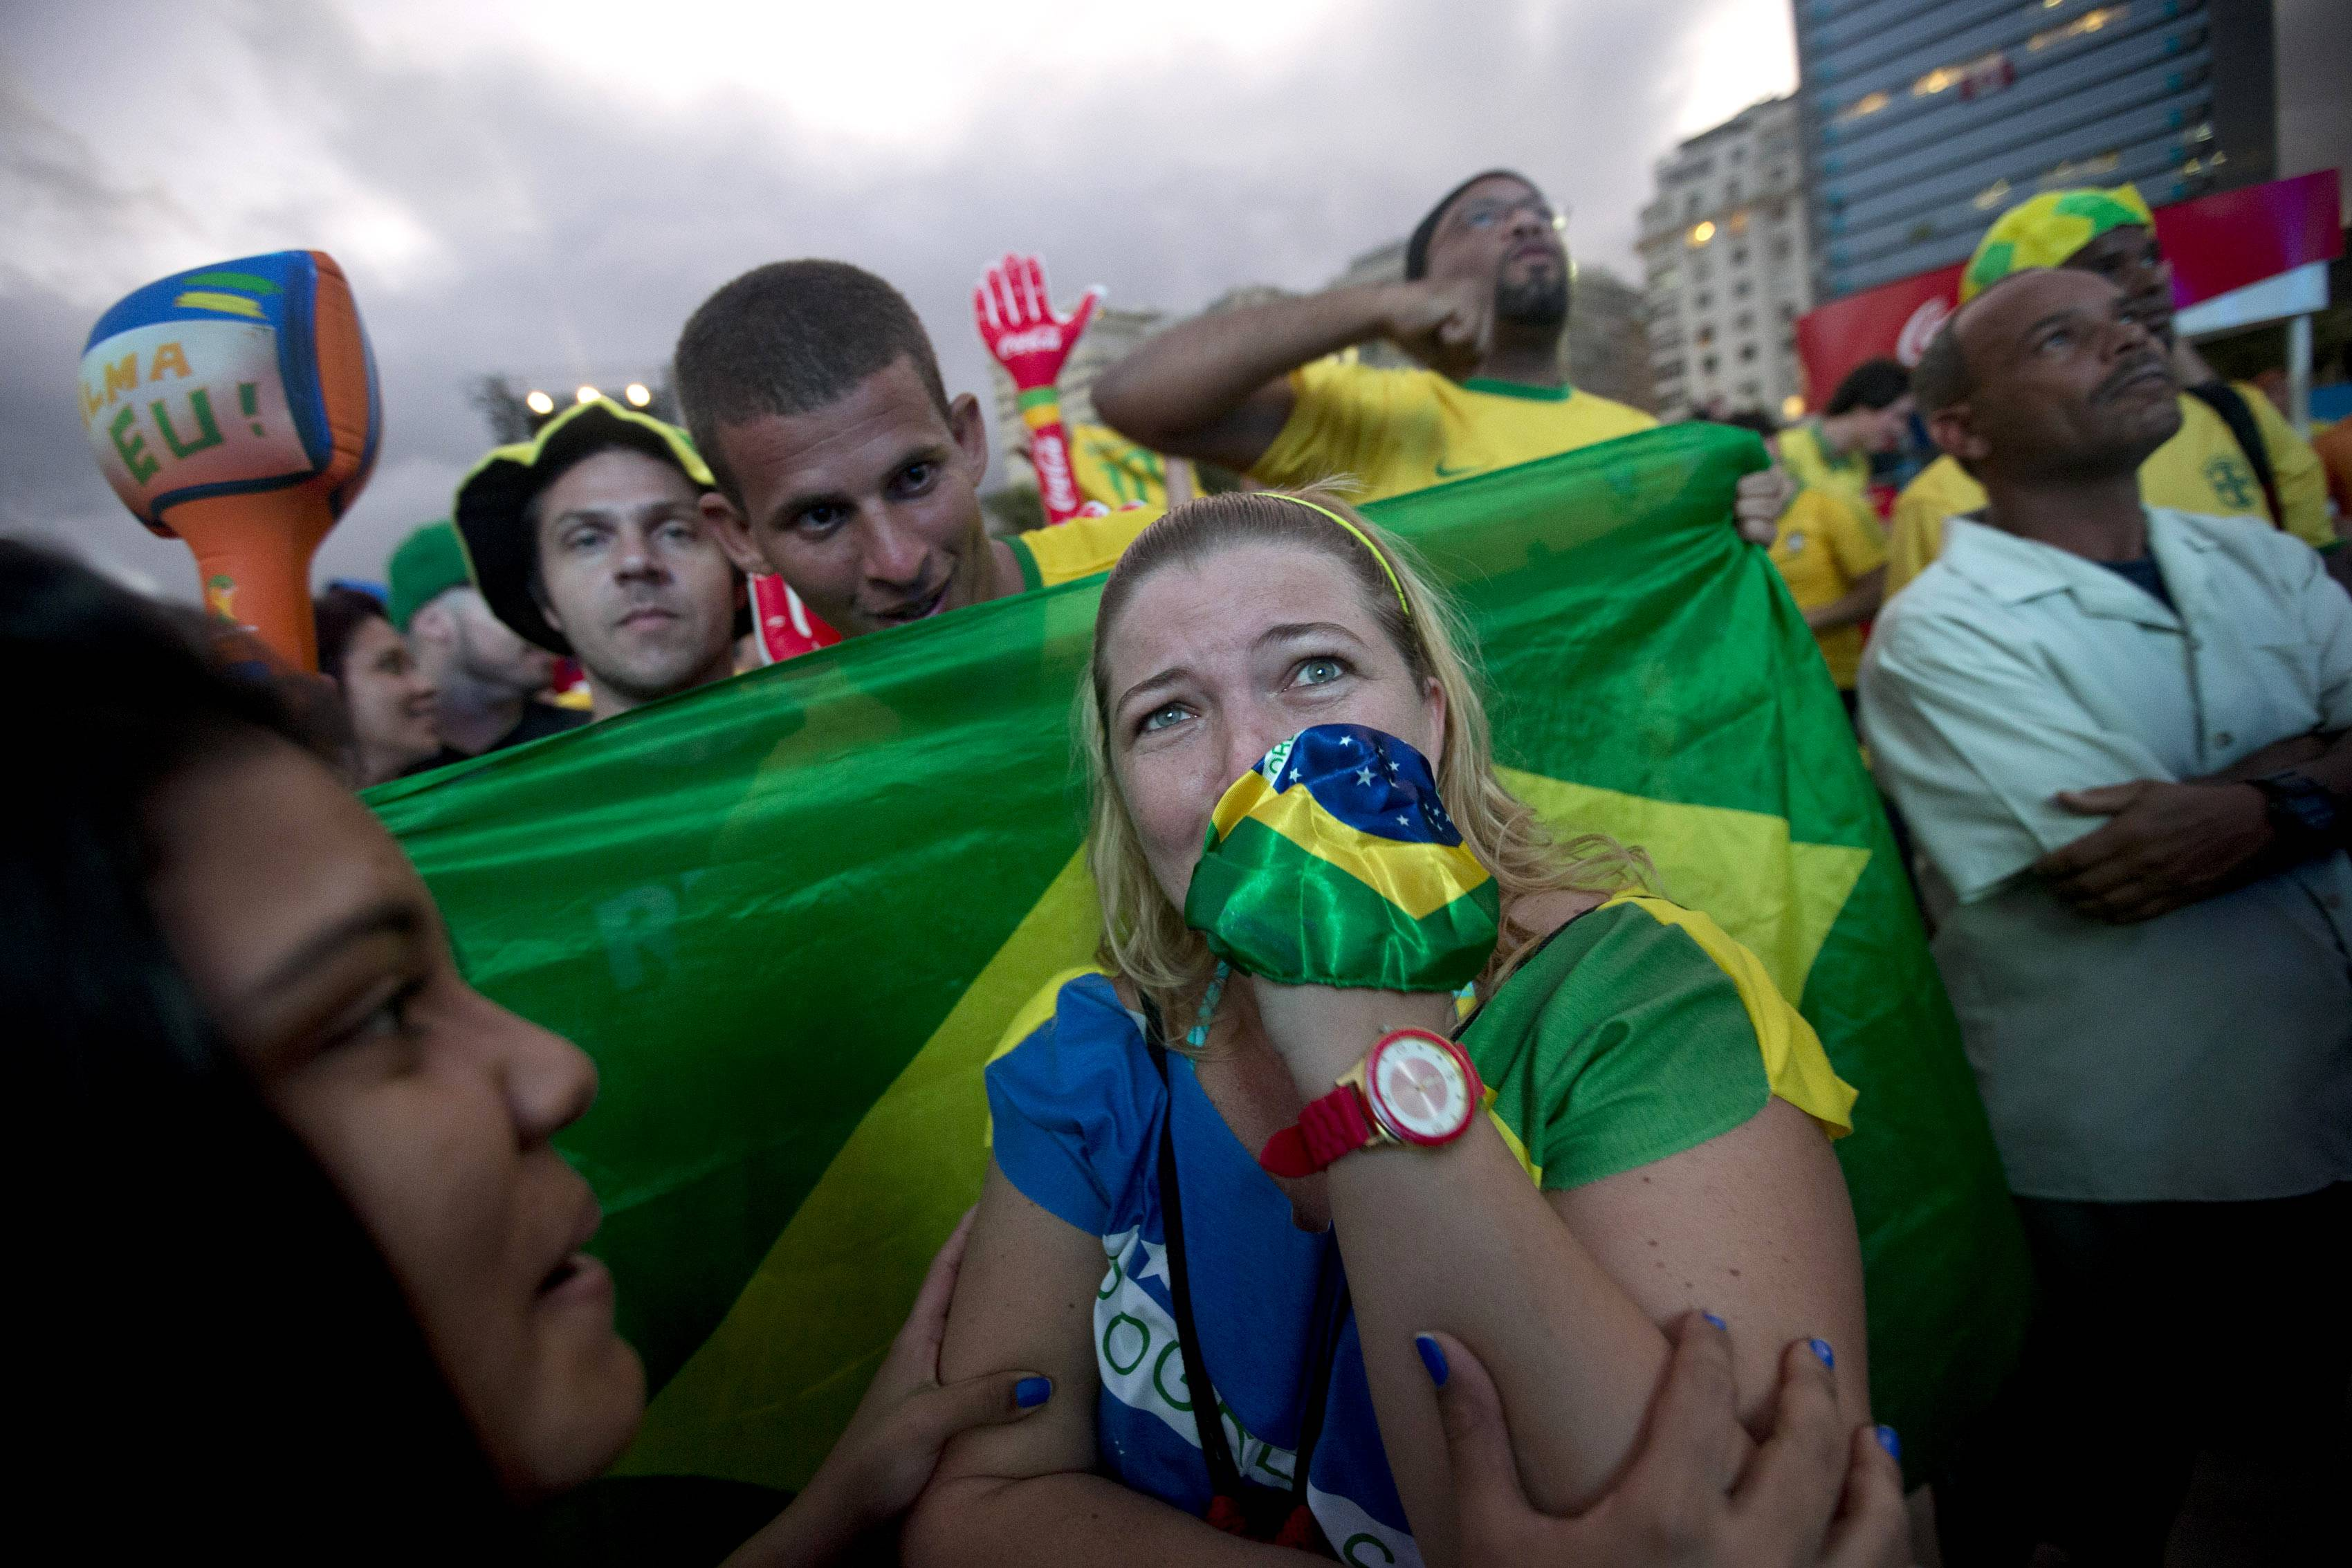 A Brazil soccer fan cries after Brazil scored an own goal during the World Cup opening match with Croatia as she watches the game inside the FIFA Fan Fest area on Copacabana beach in Rio de Janeiro, Brazil.